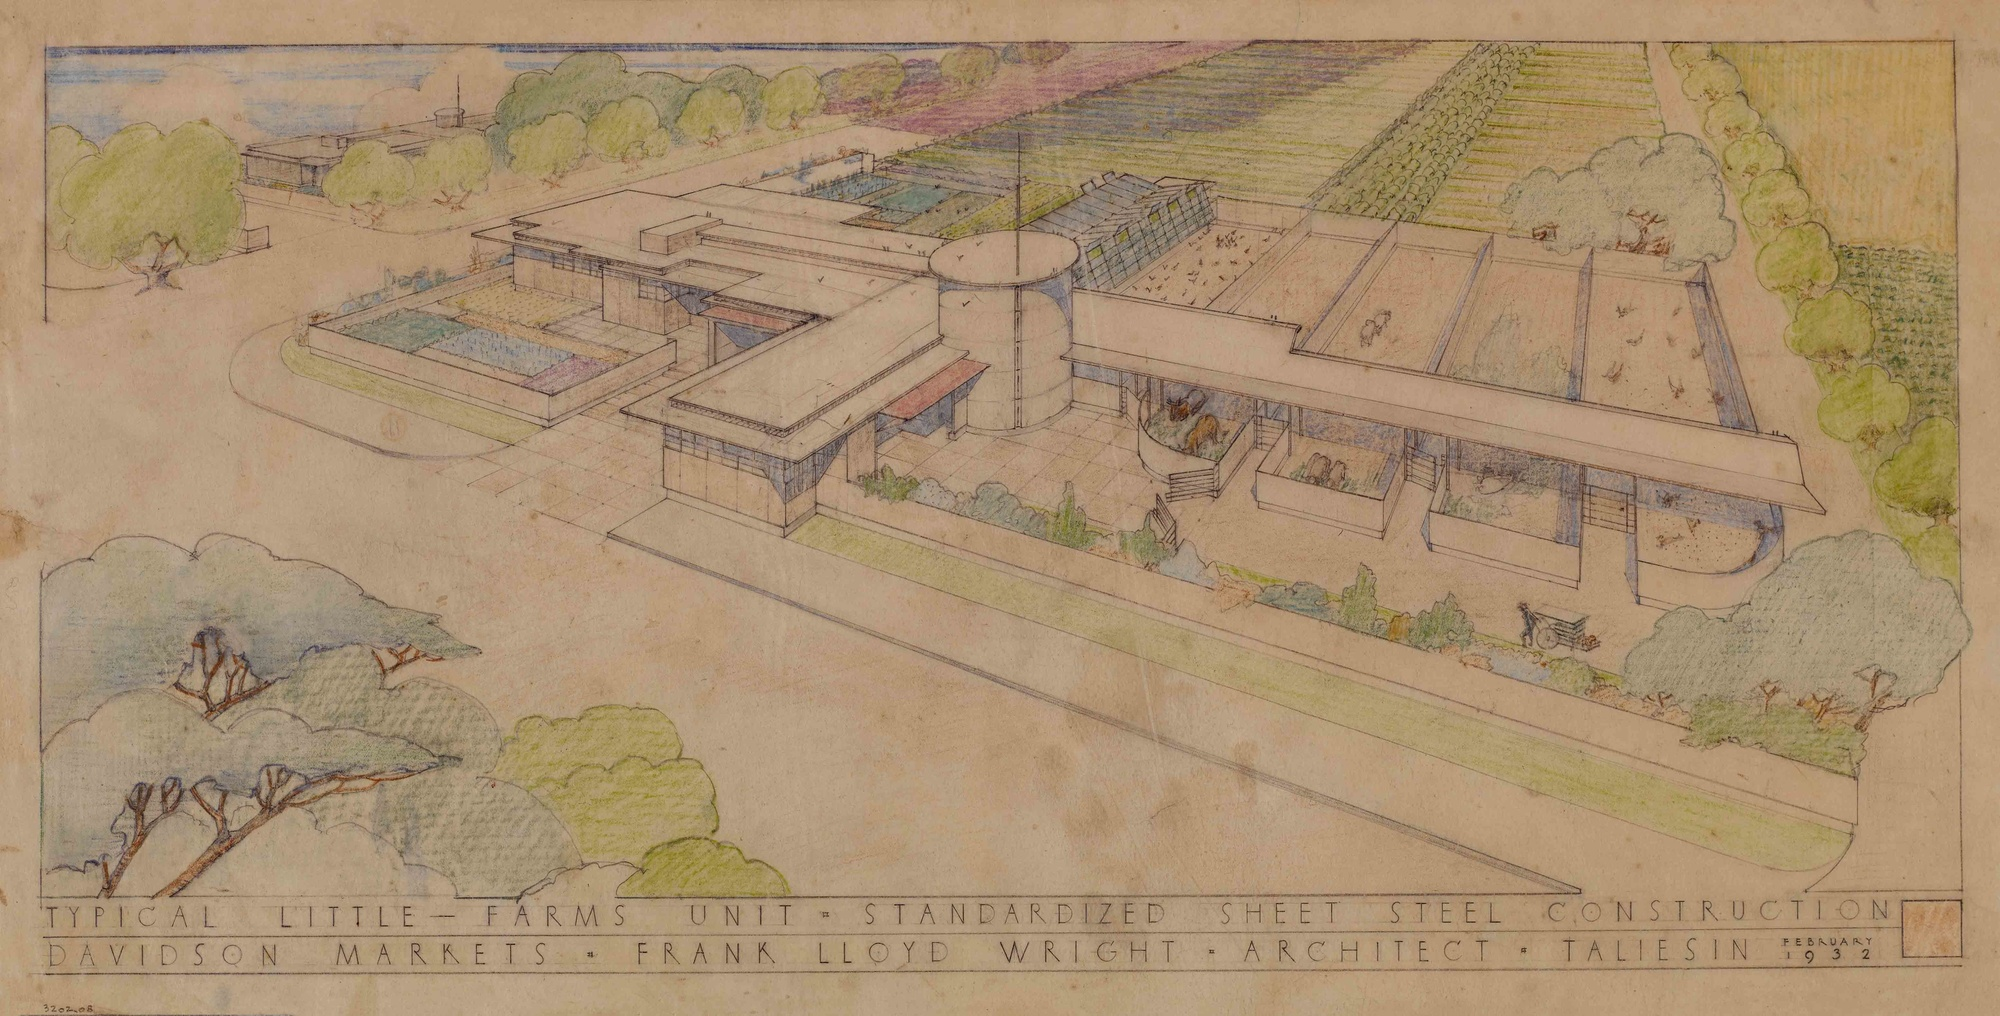 A 1932 illustration of Davidson Little Farms Unit by Frank Lloyd Wright. Image courtesy of MoMA